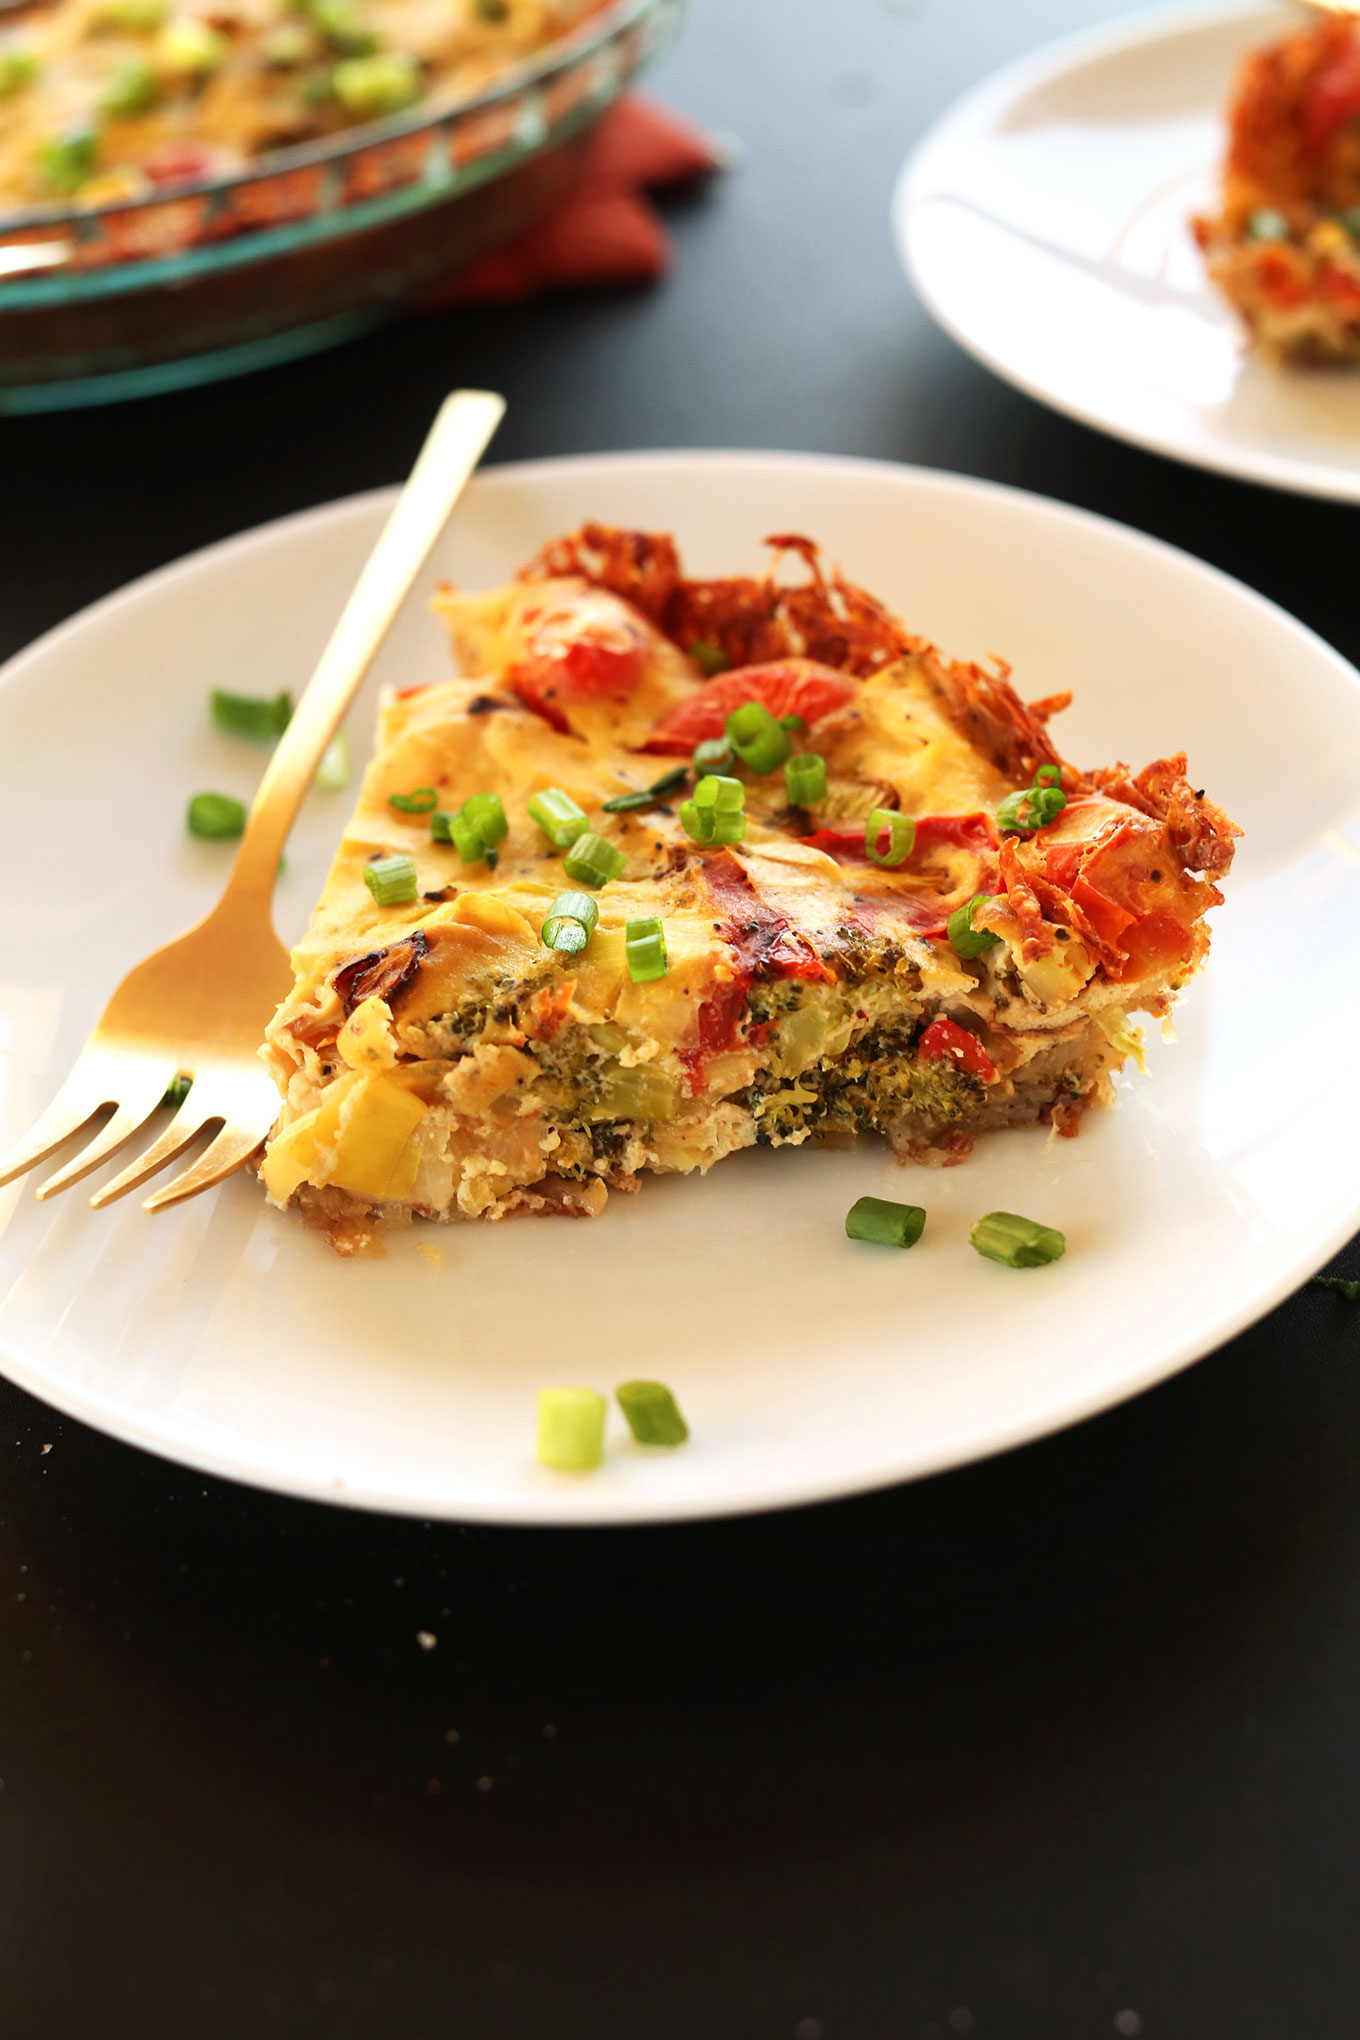 Slice of Tofu Quiche for a filling gluten-free vegan breakfast